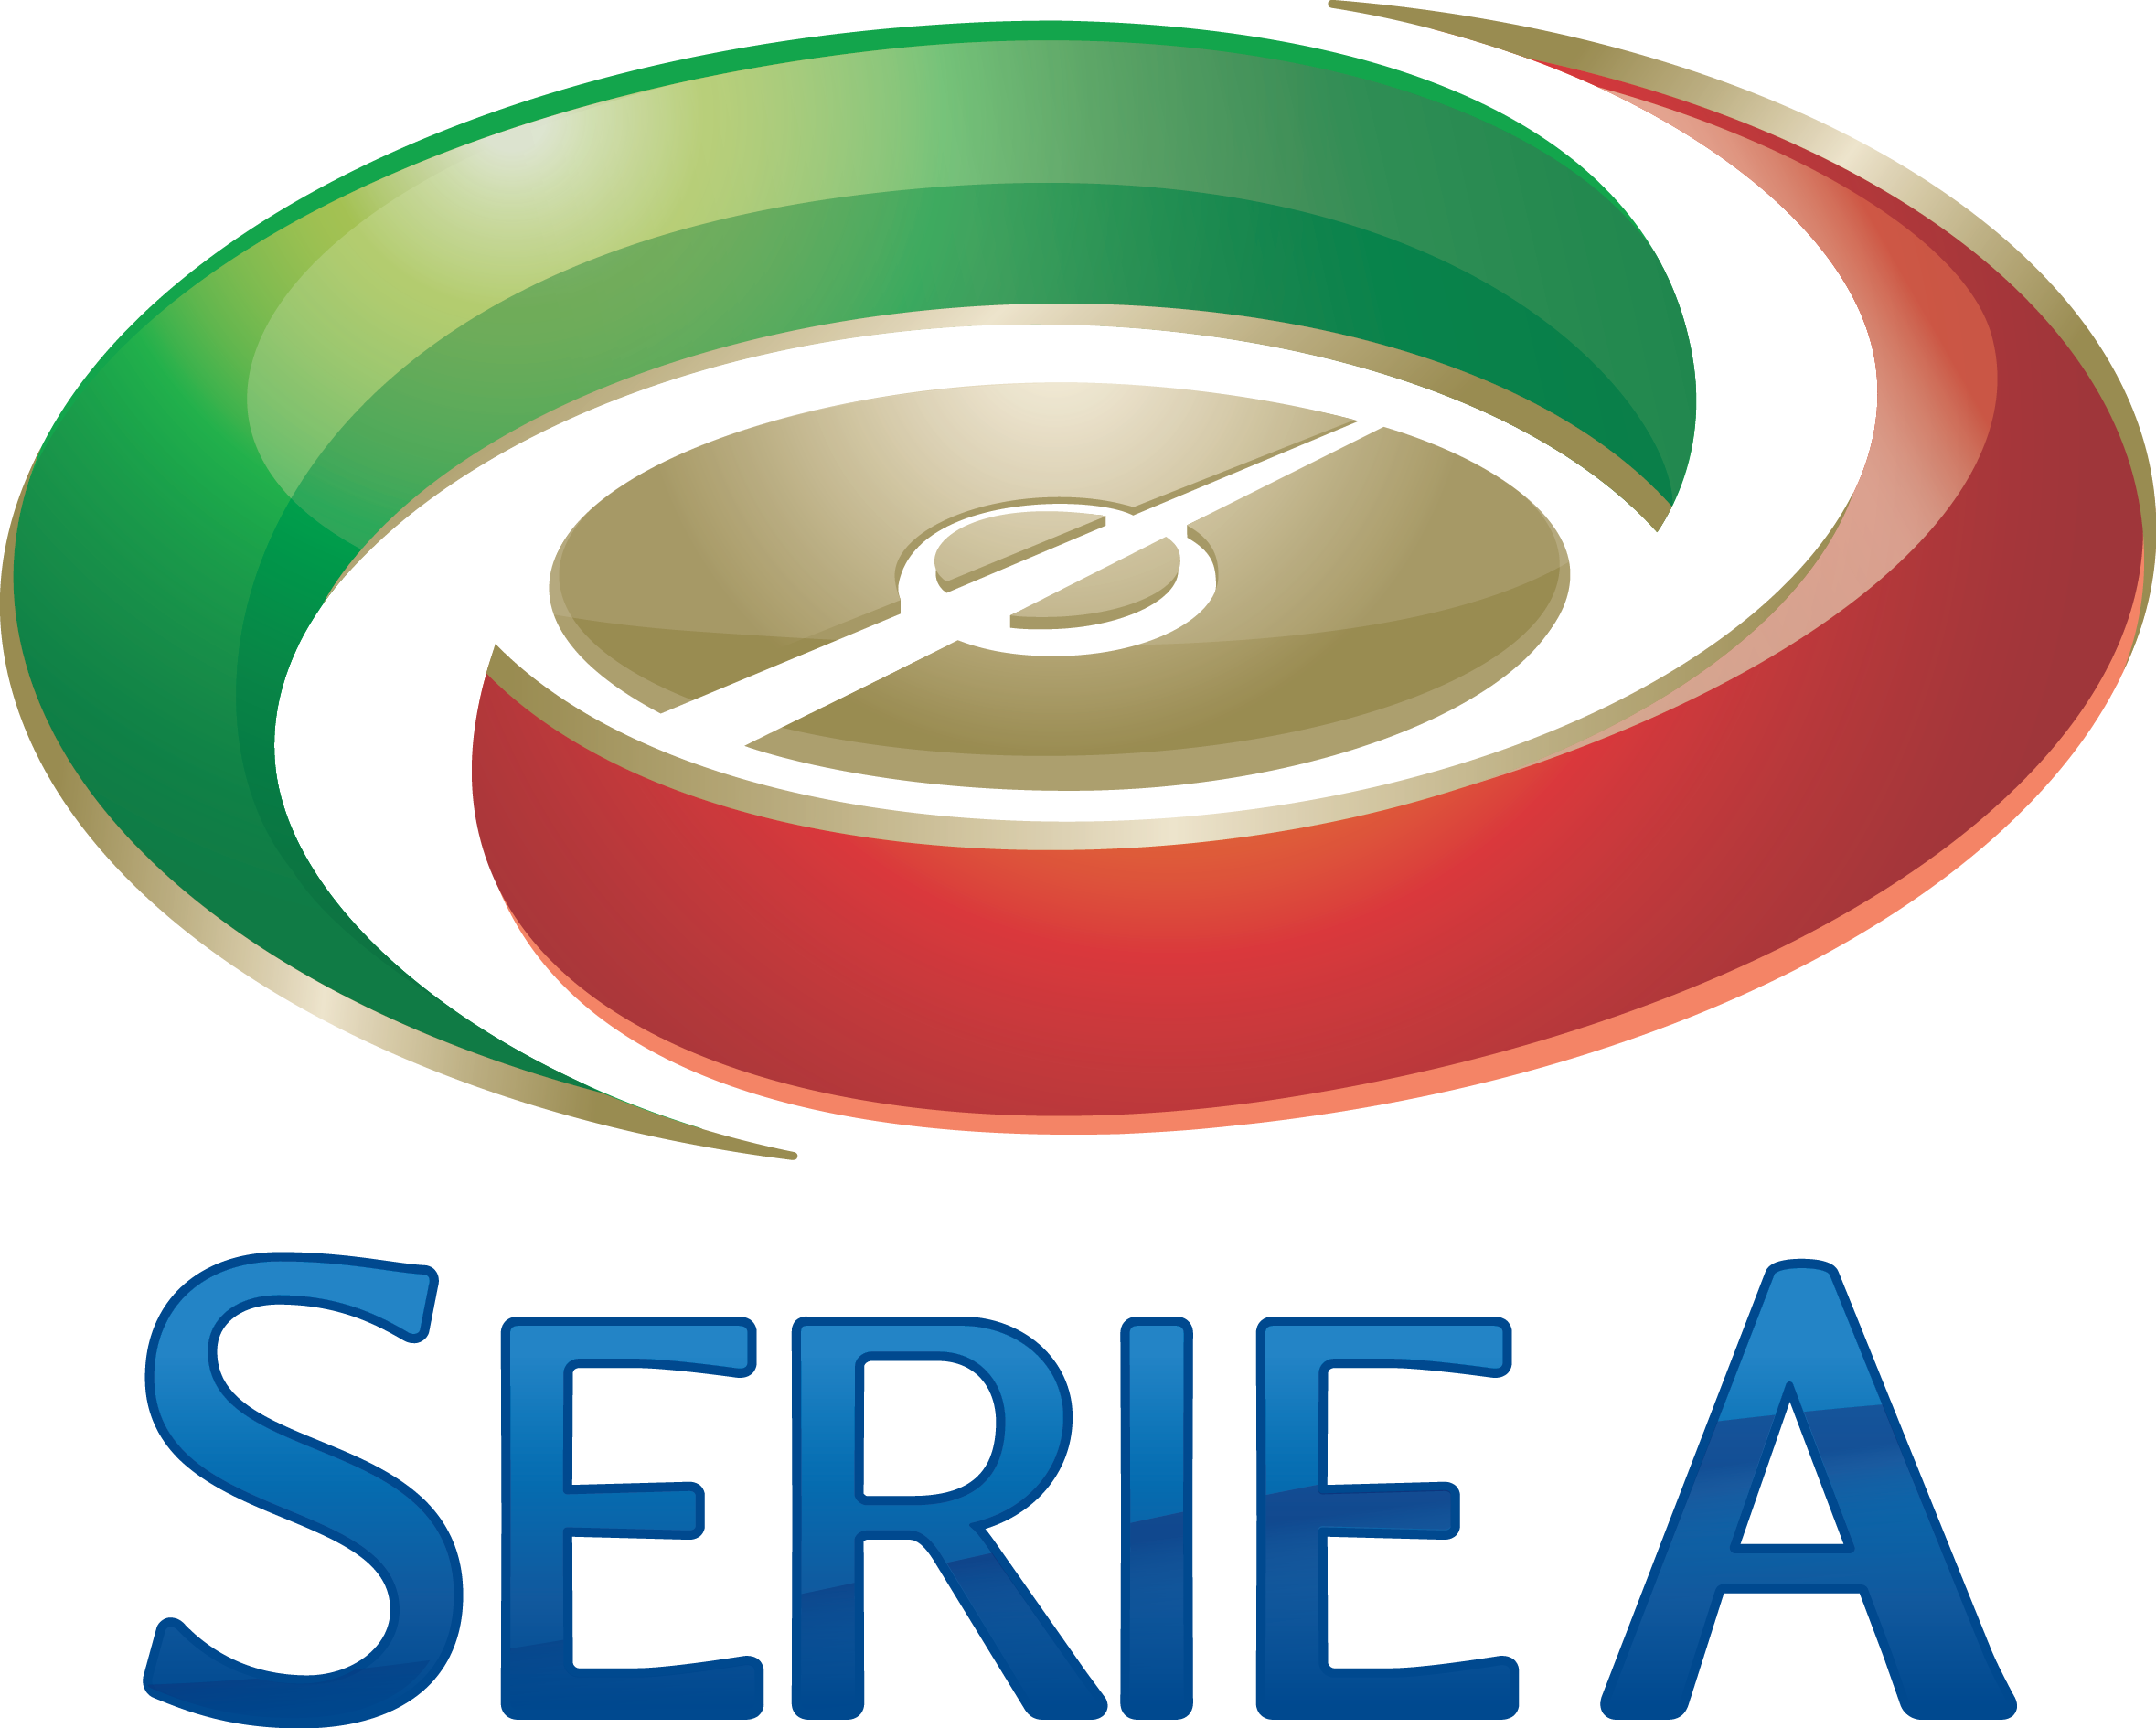 AC Milan vs Palermo 3-2 All goals and highlights 19/09/2015